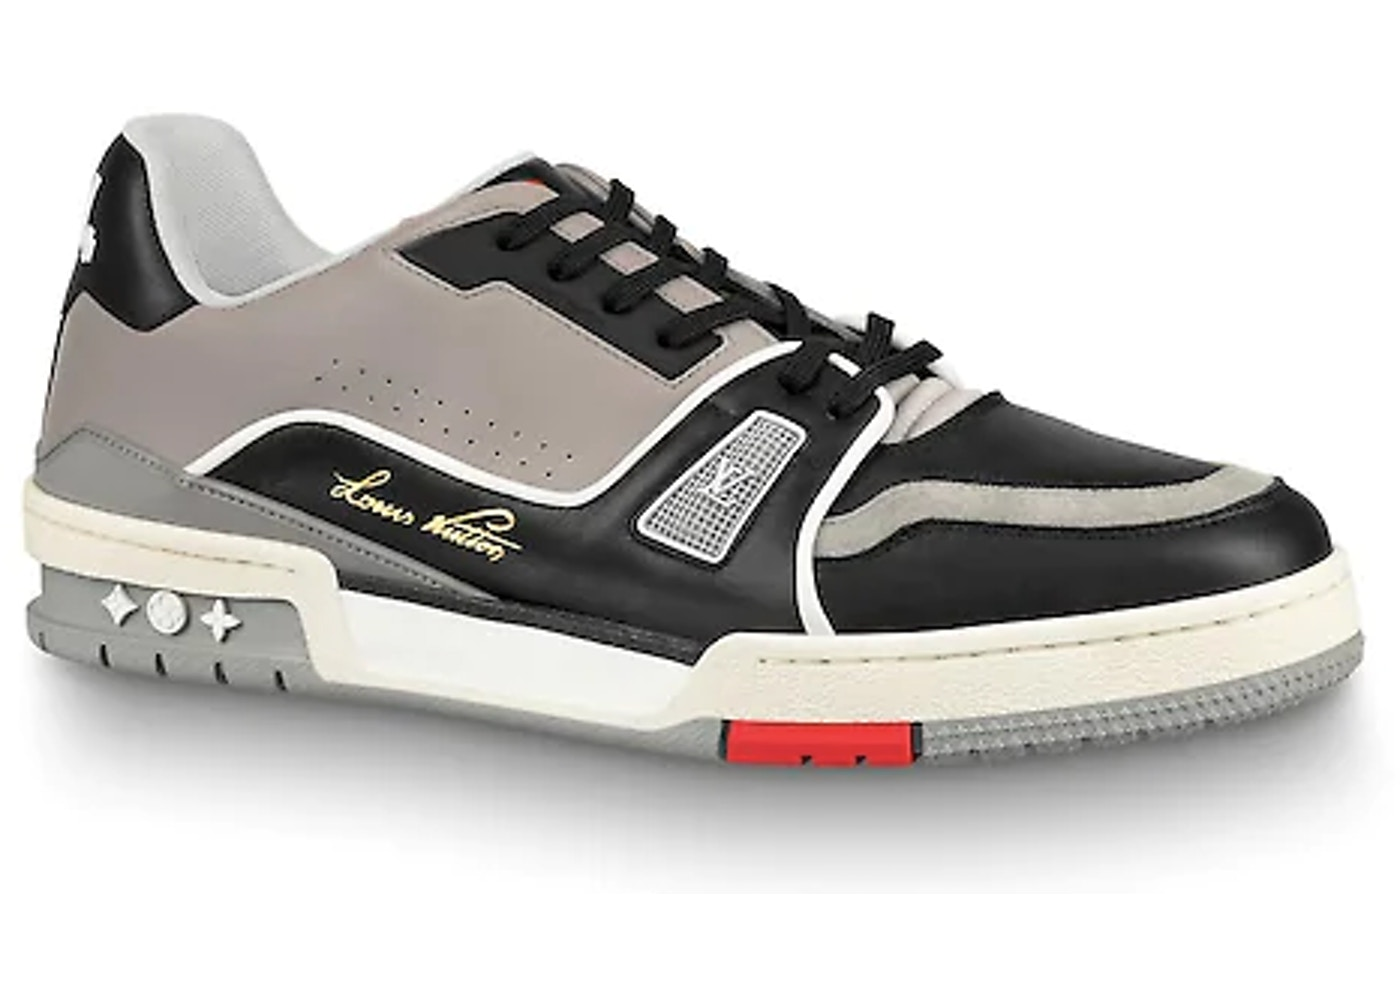 8acf4a24a65 Buy Louis Vuitton Shoes & Deadstock Sneakers